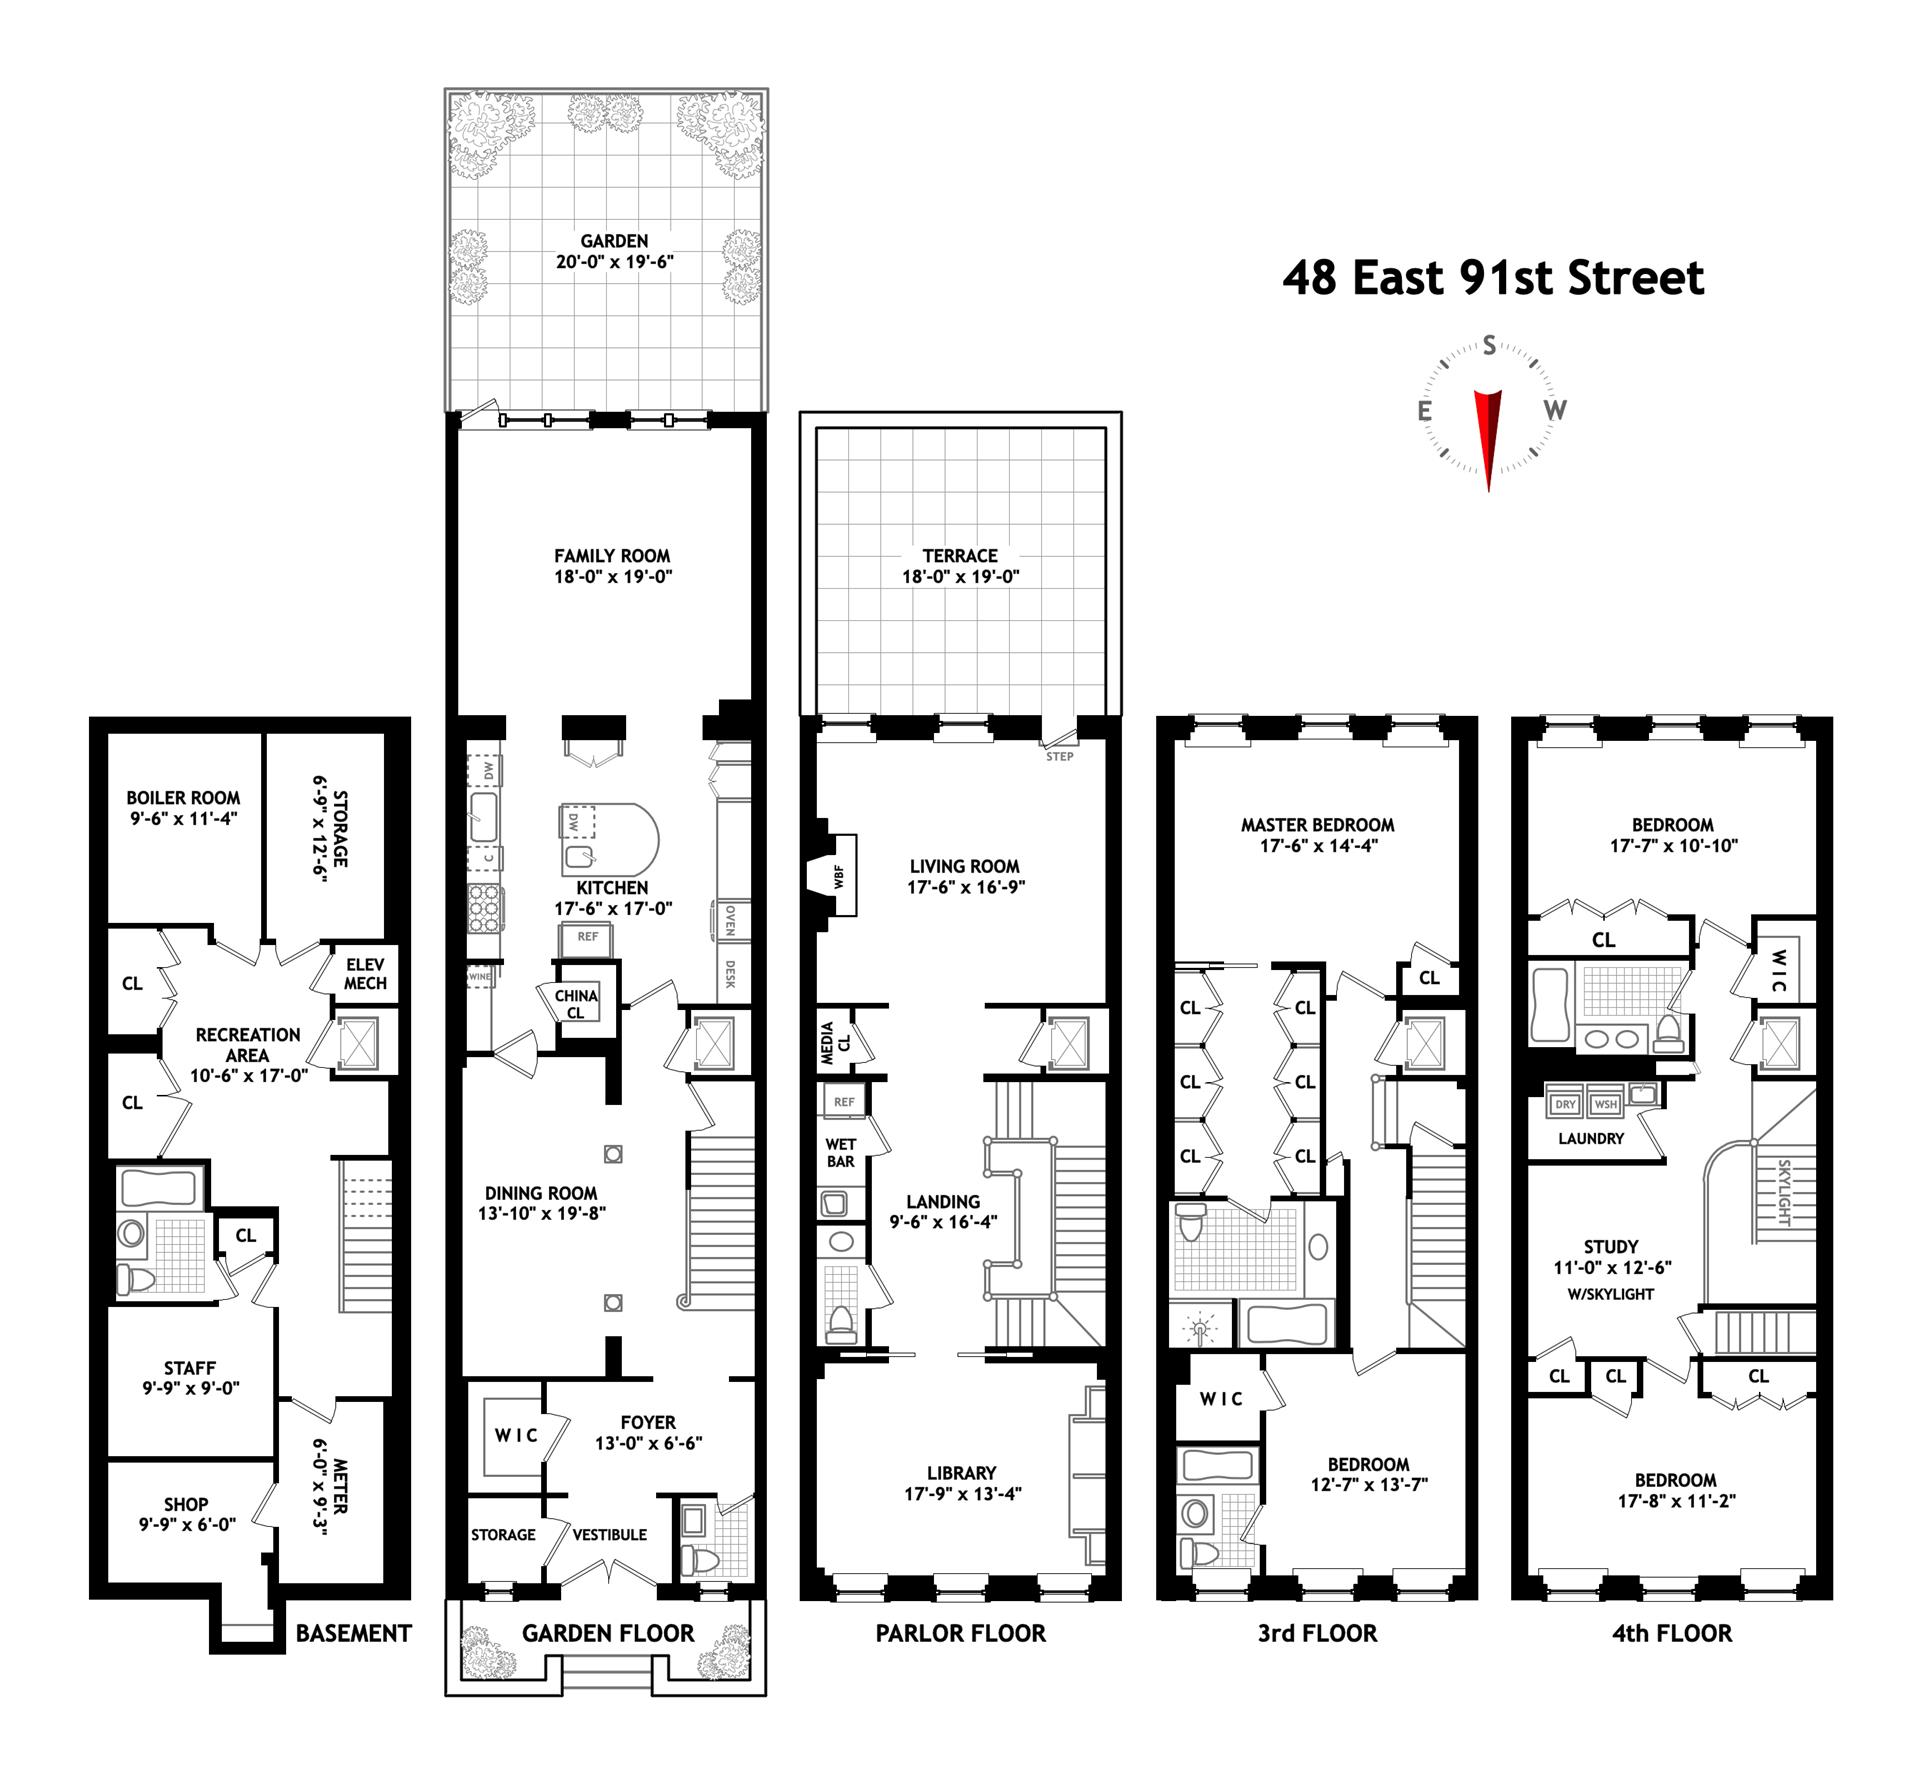 Floor plan of 48 East 91st St - Carnegie Hill, New York